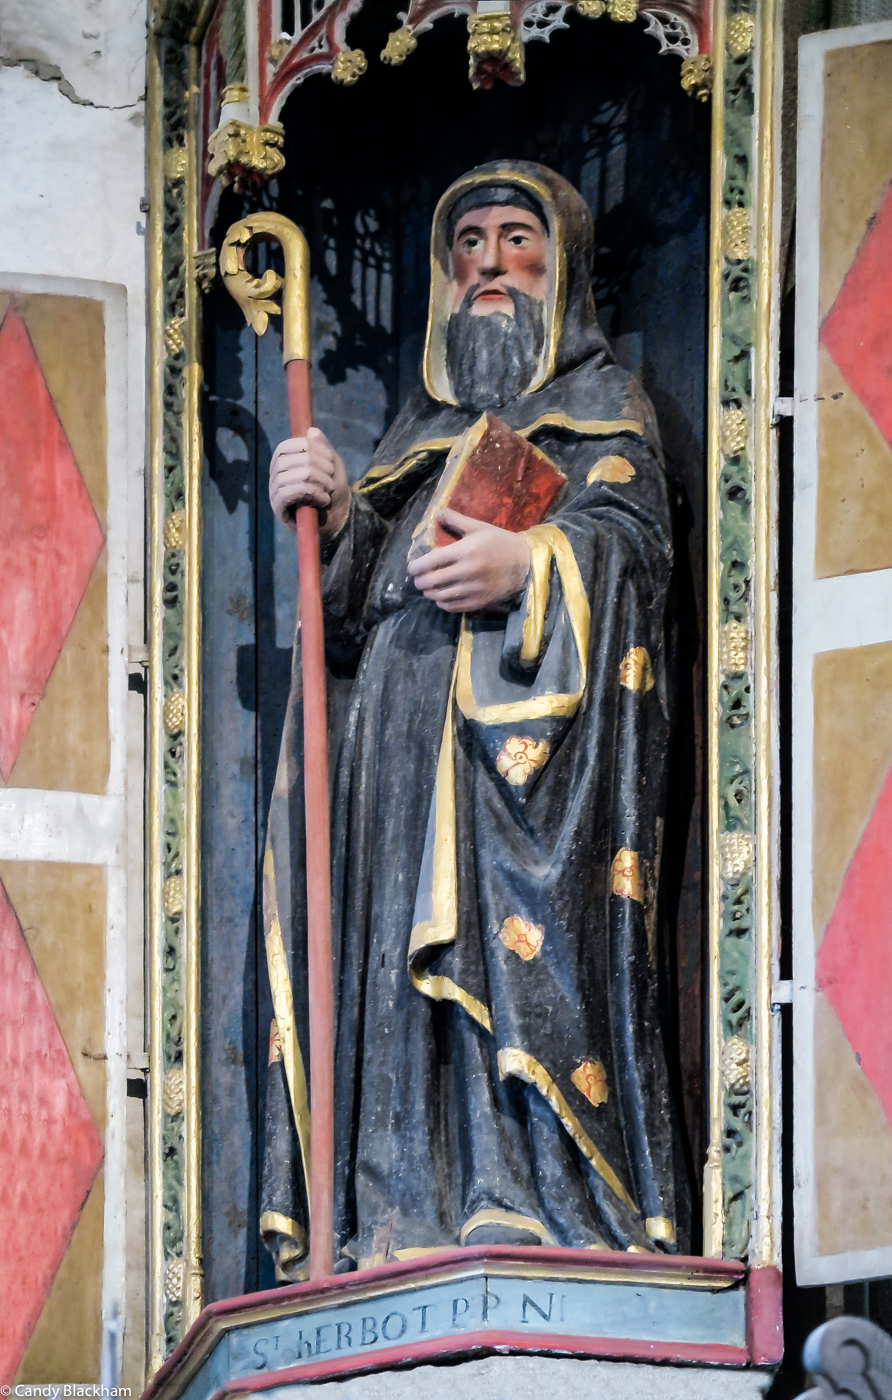 Statue of St Herbot inside the Church